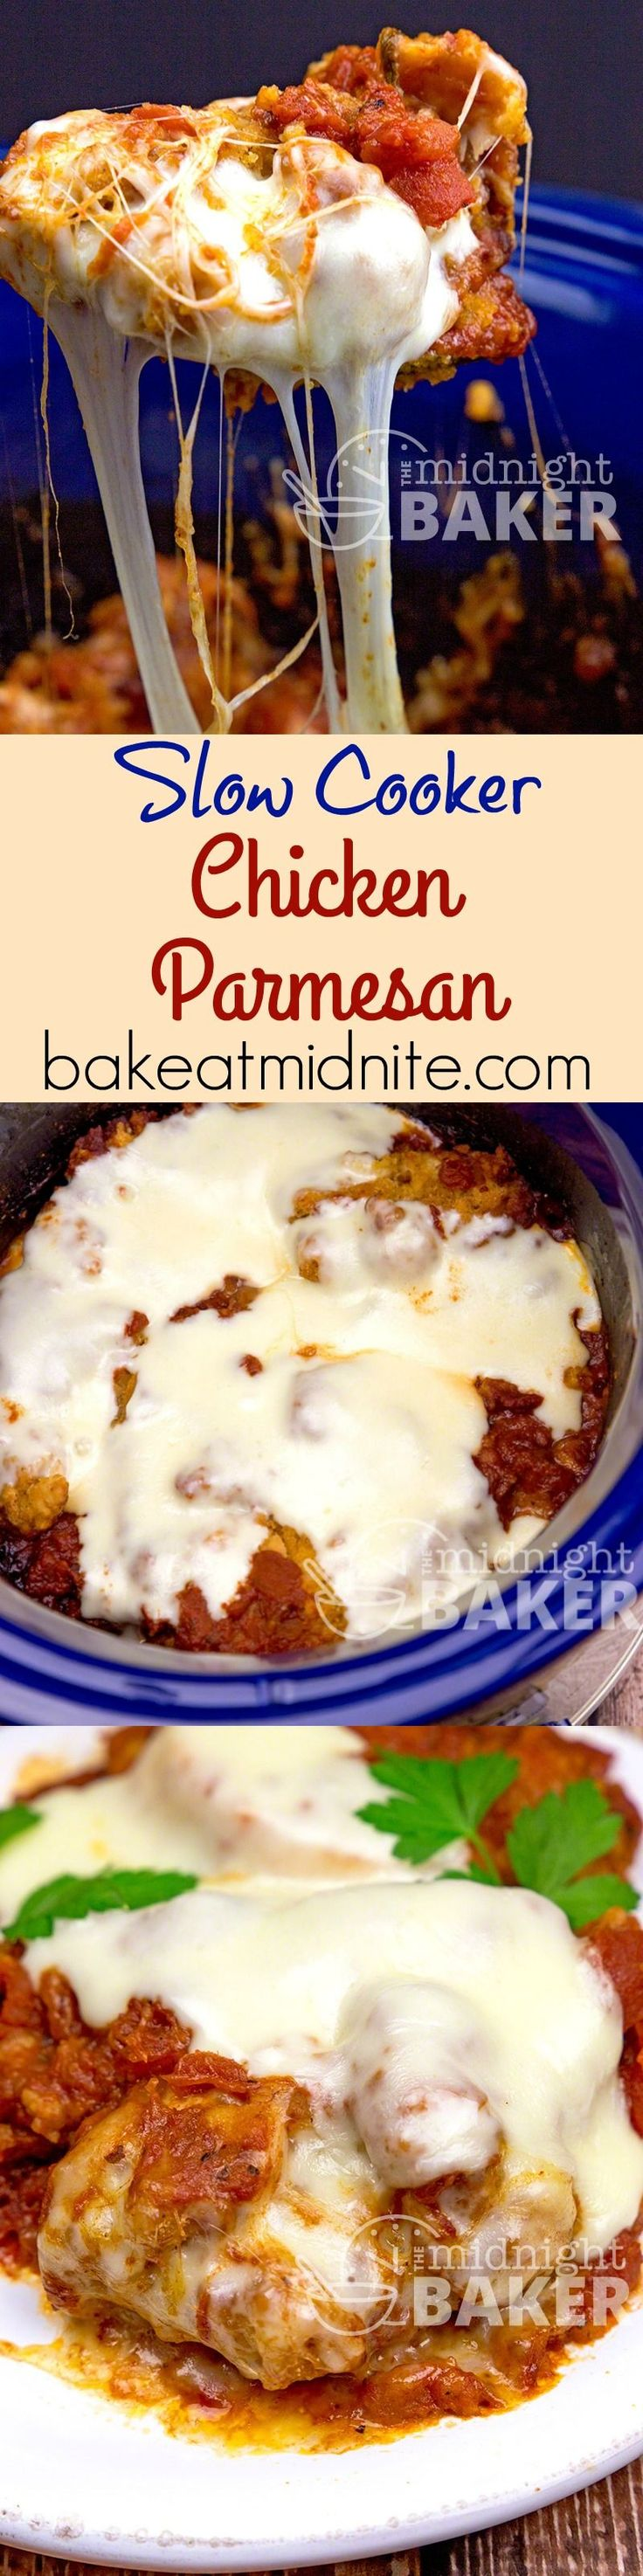 Everyone's favorite Italian dish, chicken parmesan, adapted for the slow cooker.